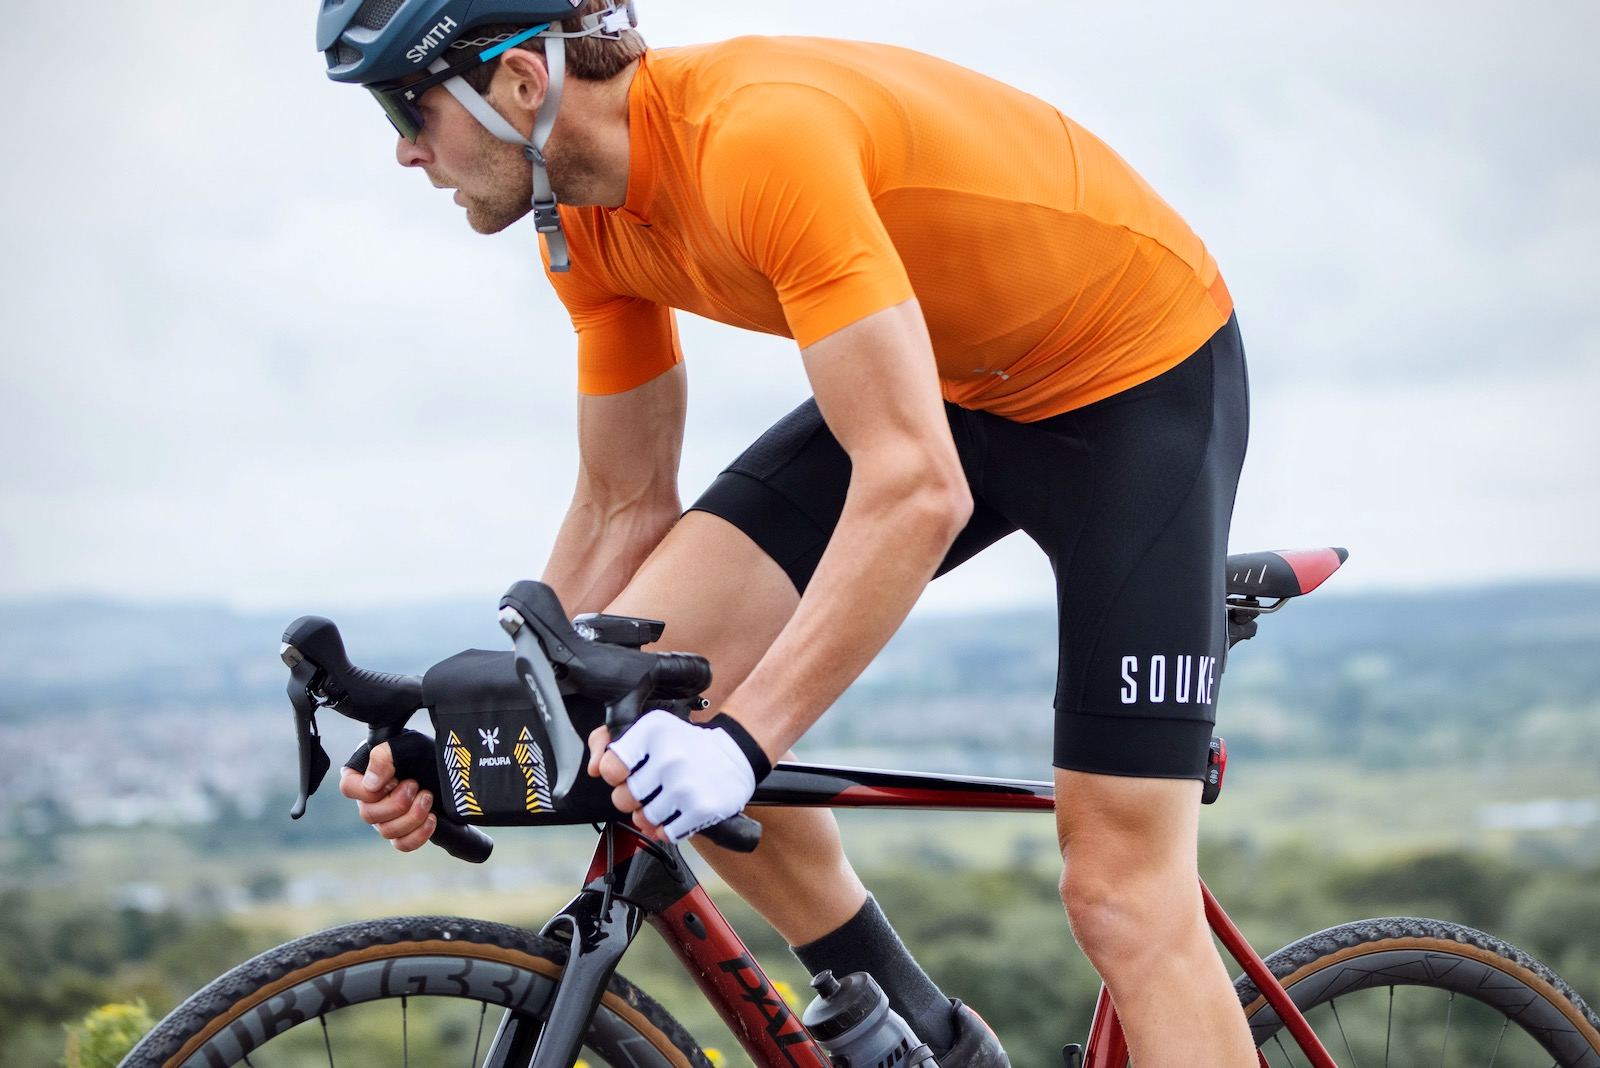 Review – Souke Sports Cycle Apparel Jersey and Shorts